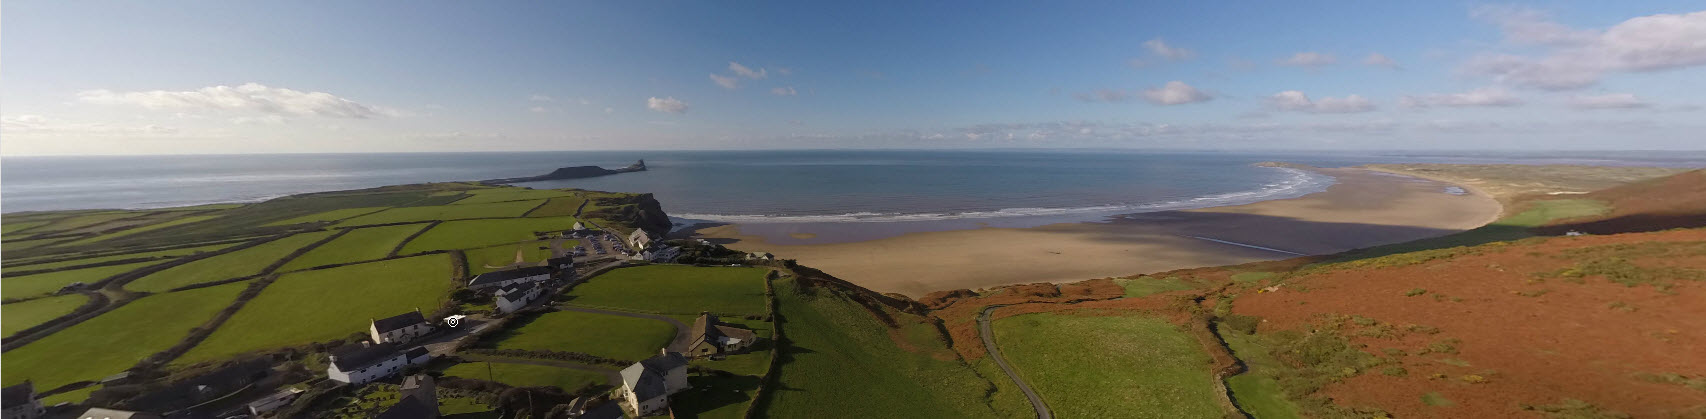 360 interactive aerial panorama of Rhossili, Swansea, South Wales, UK